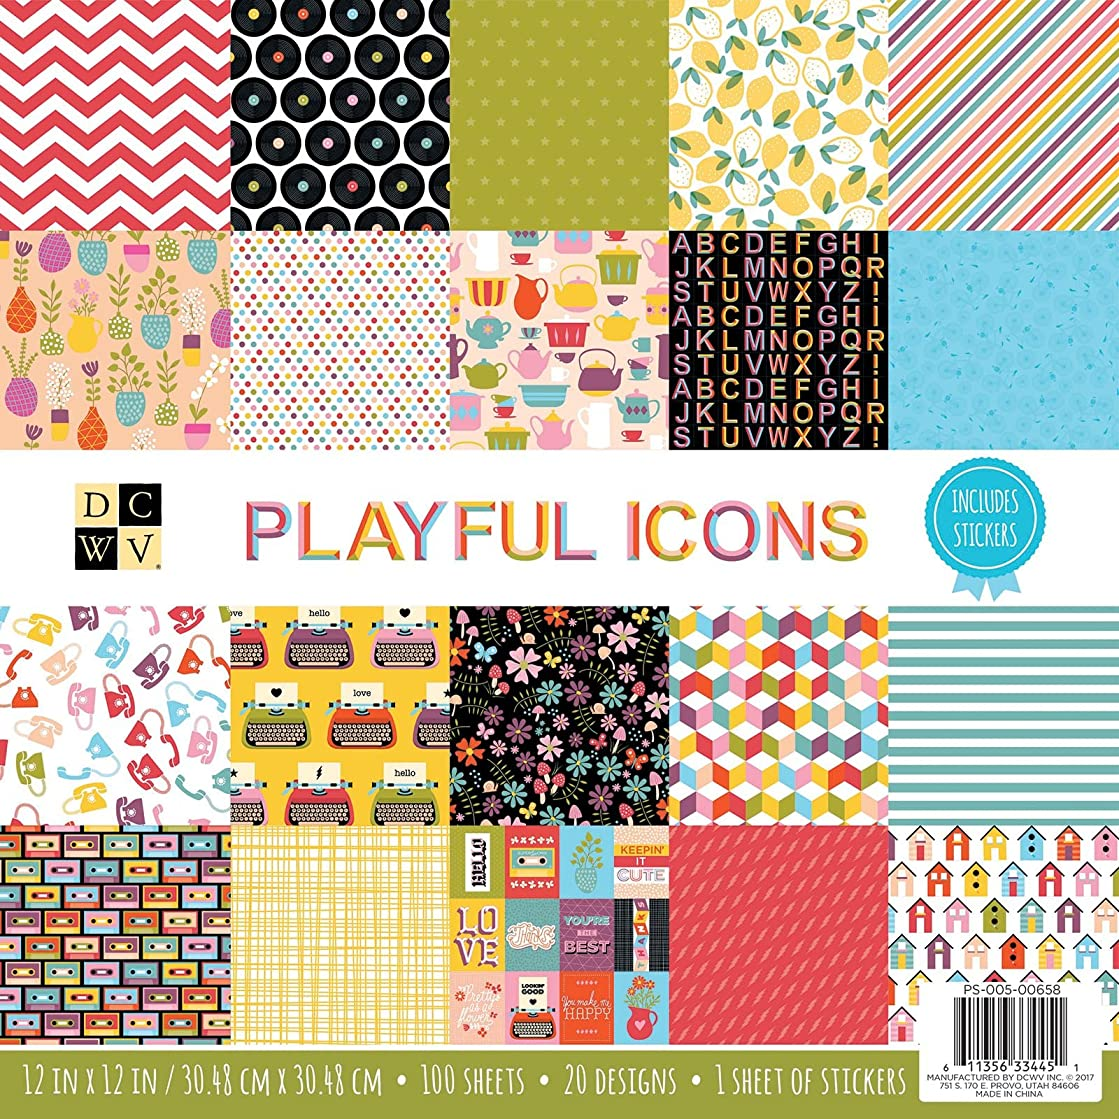 DCWV 12 x 12 Inch 100 Sheets Playful Icons Paper Pad Stacks